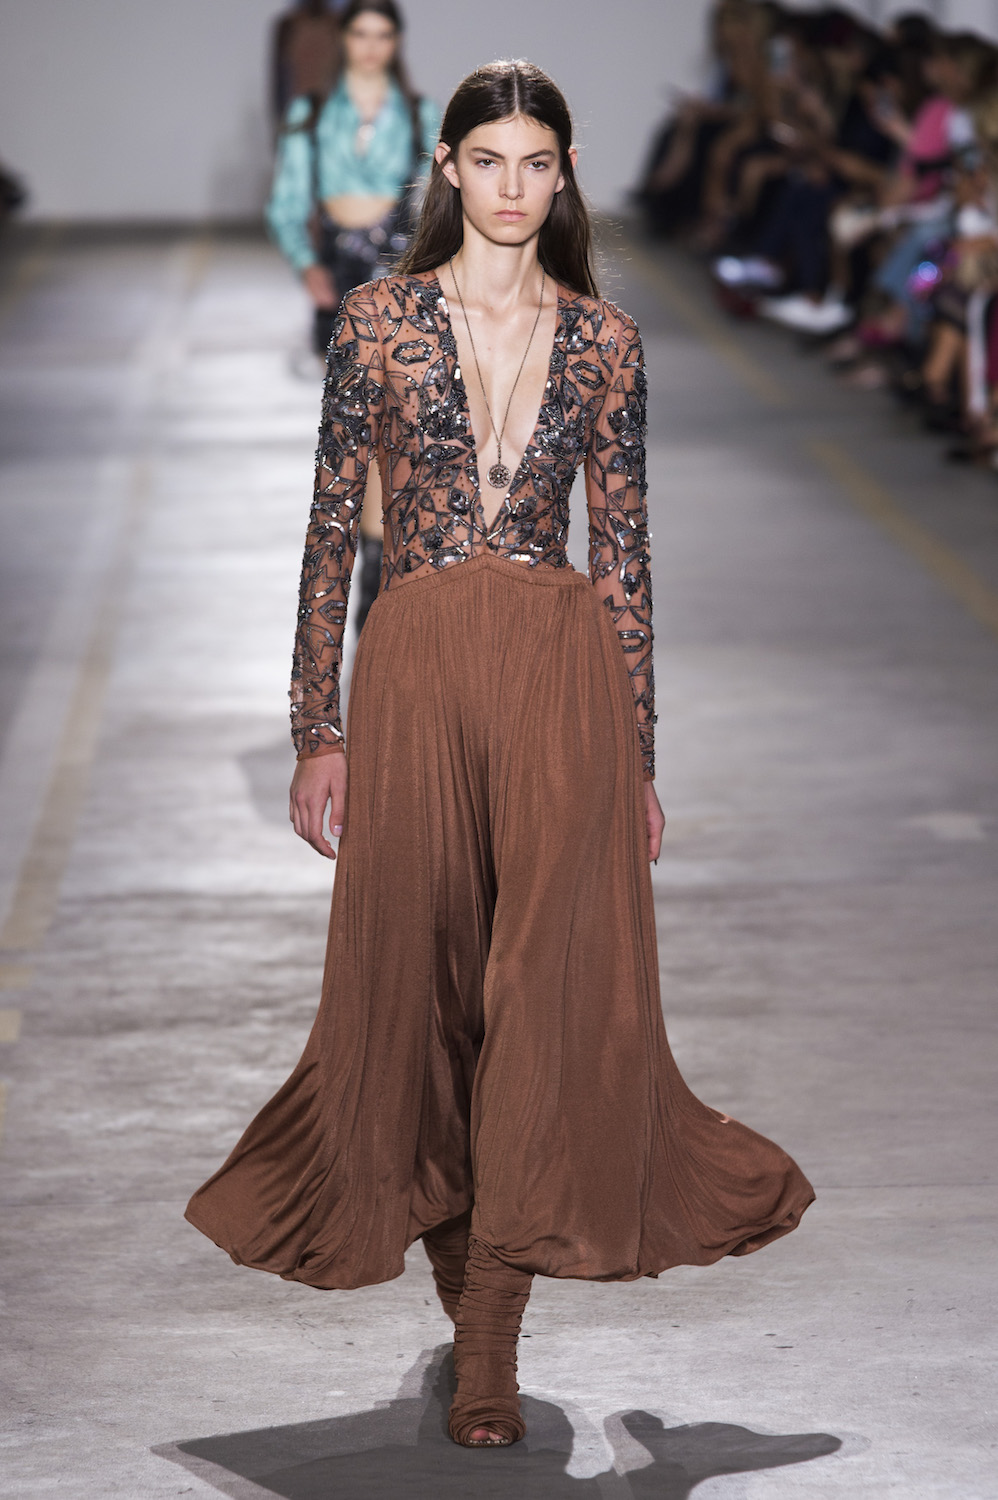 Roberto Cavalli Gets Physical for Spring/Summer 2019